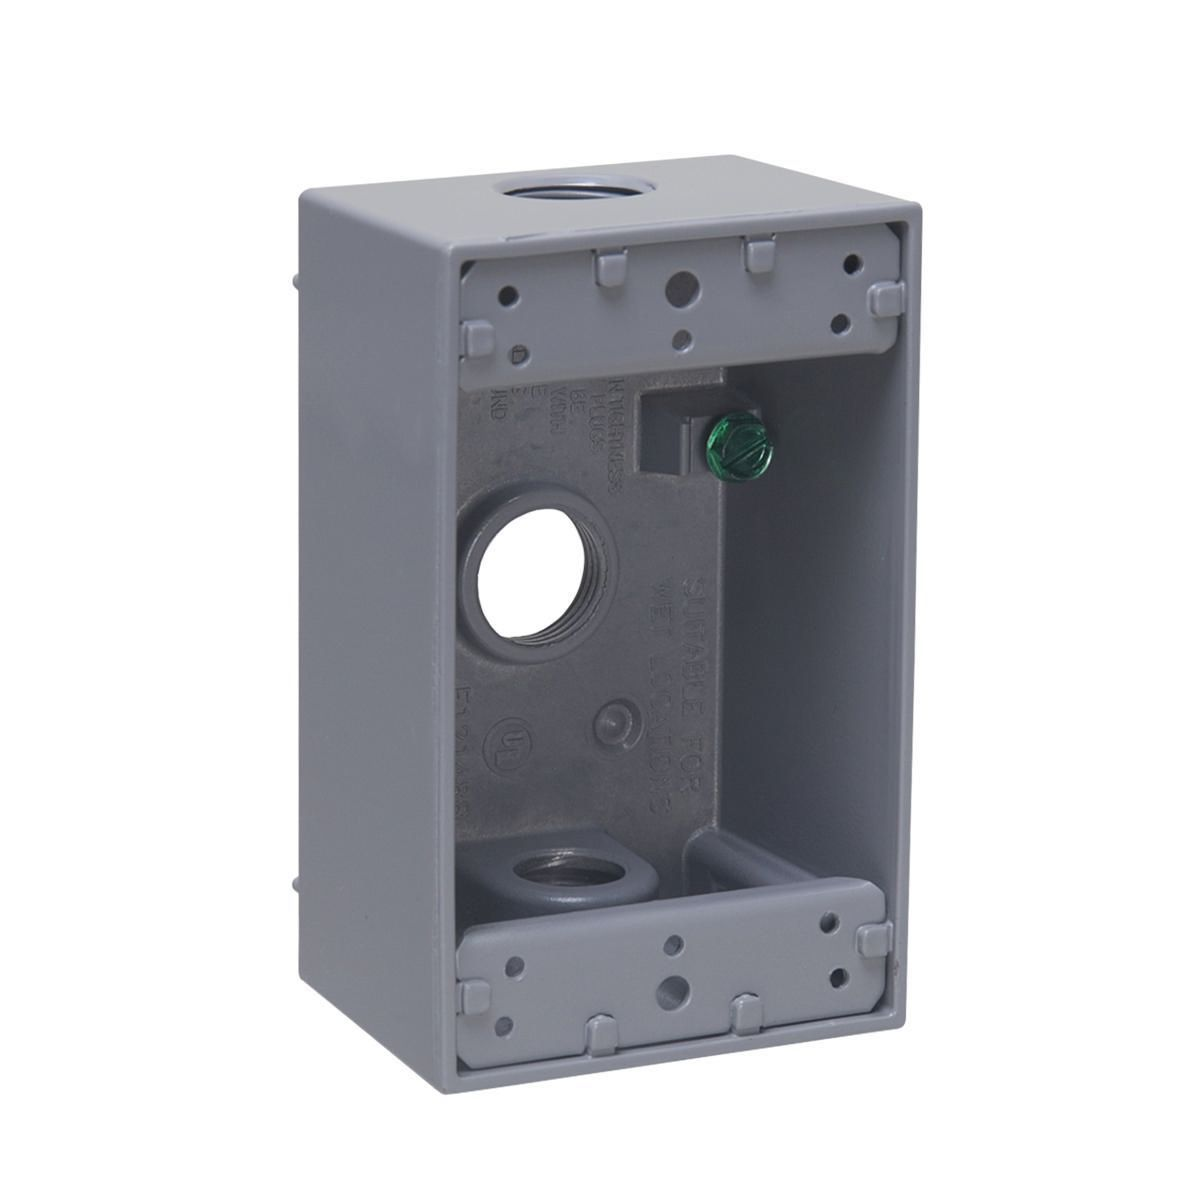 Weatherproof Electrical Boxes For Outdoor Use Weatherproofing Covered Boxes Electricity